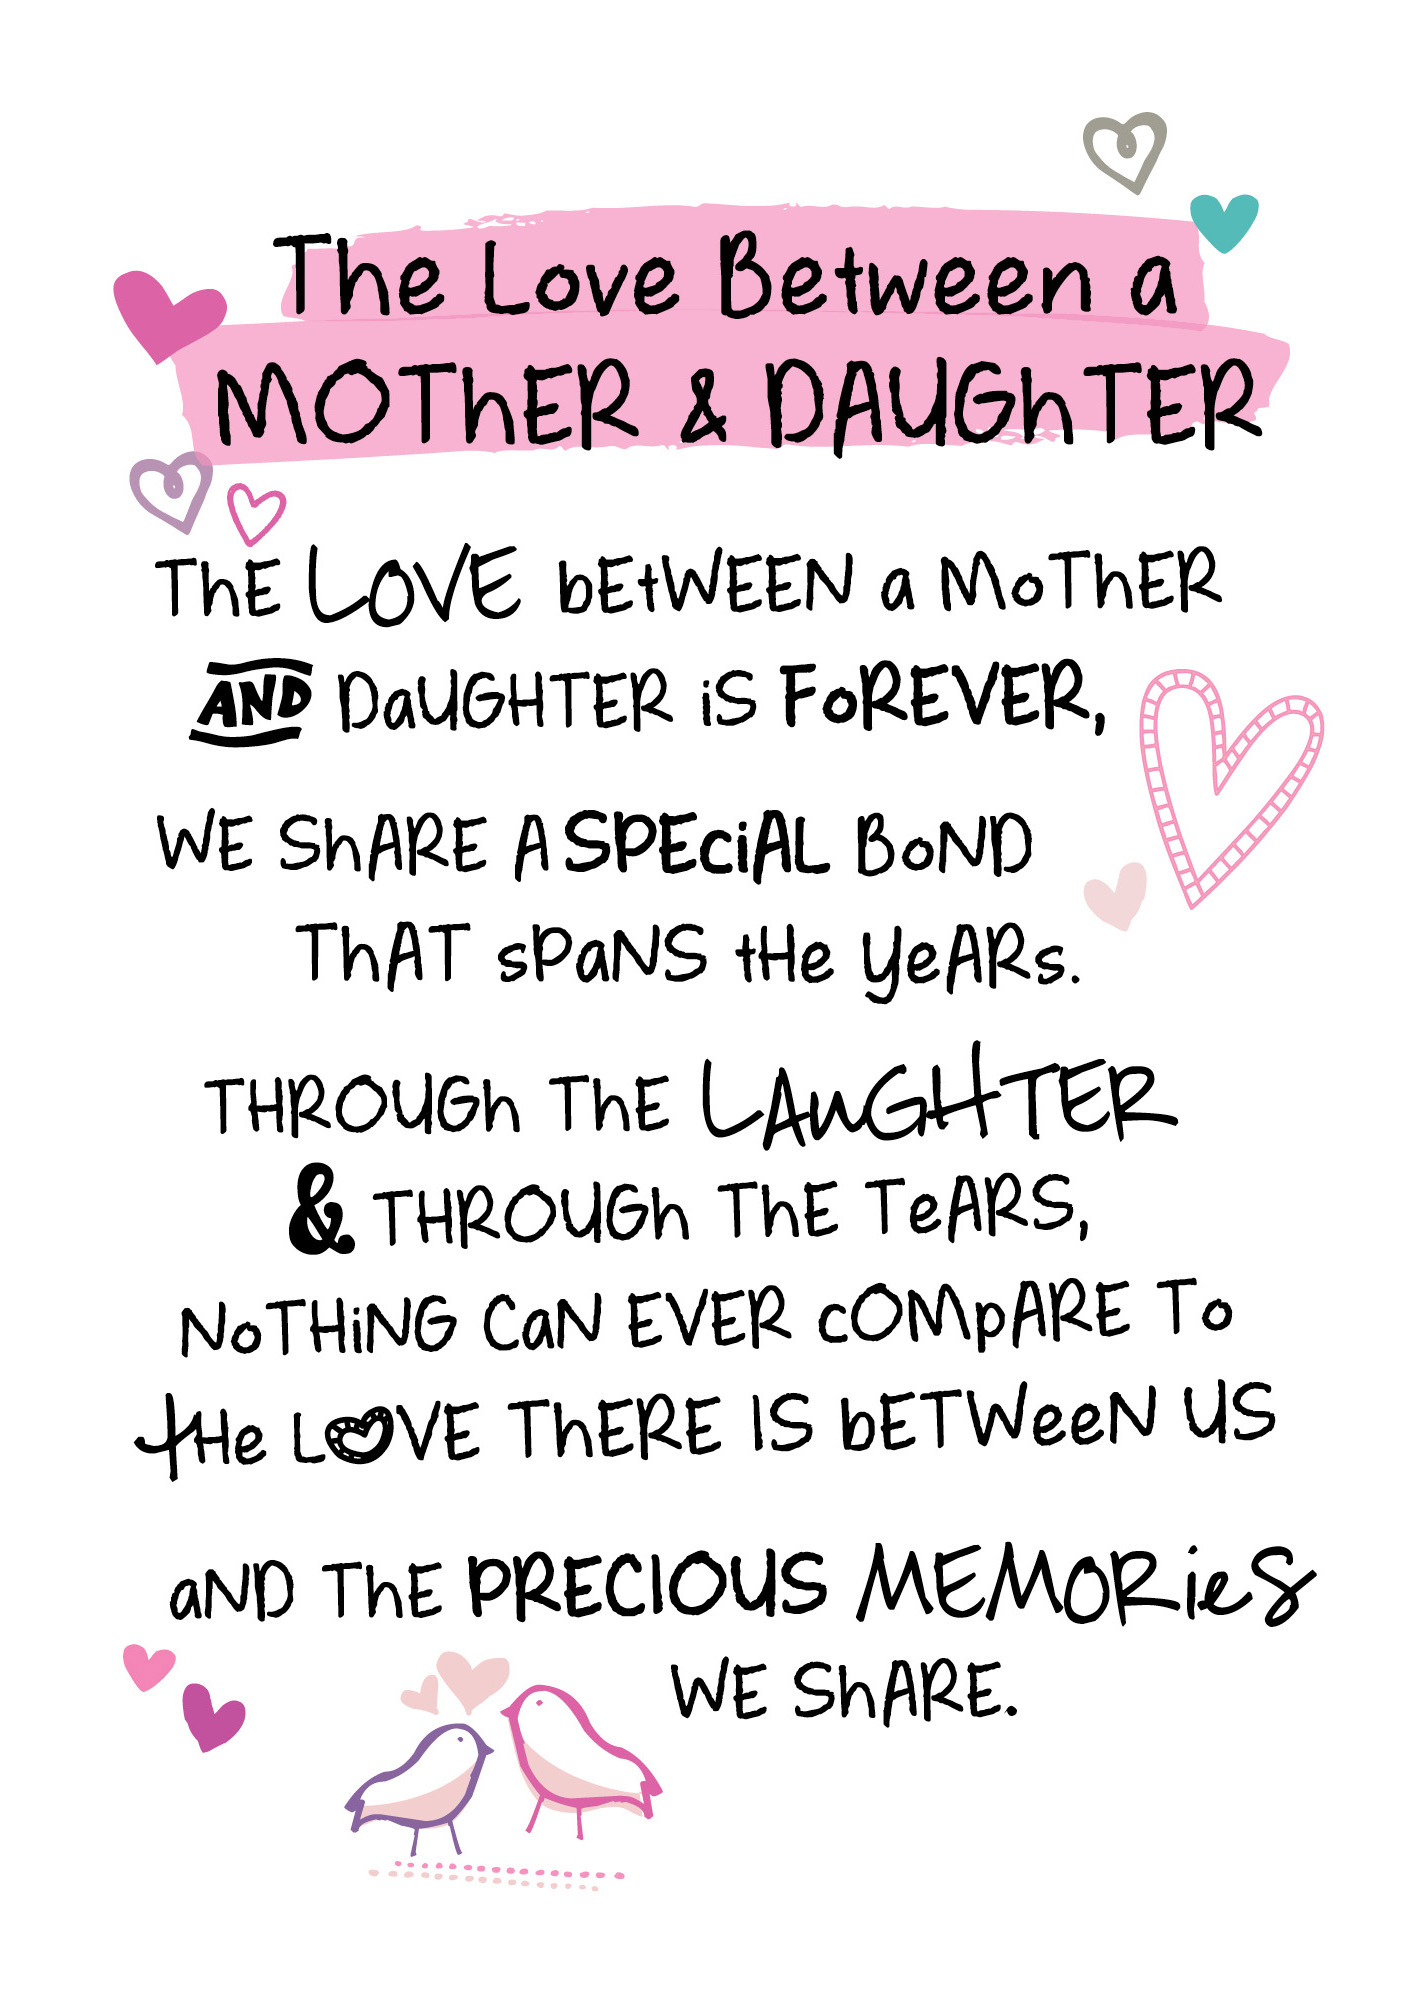 Mother & Daughter Love Inspired Words Greeting Card Blank